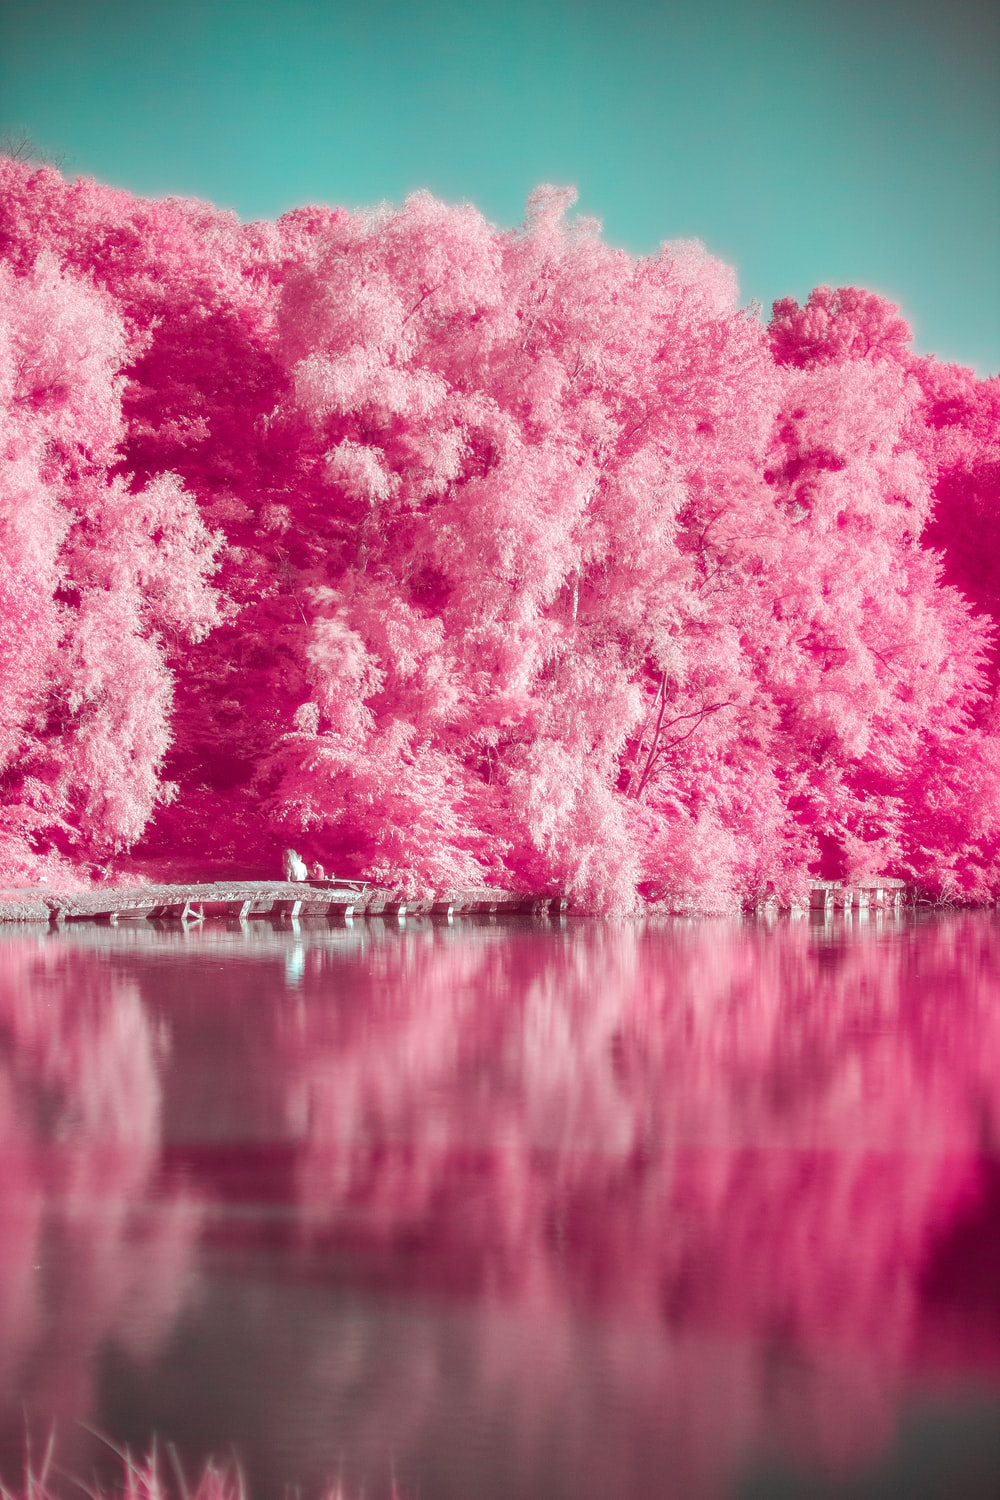 pink trees beside body of water during daytime